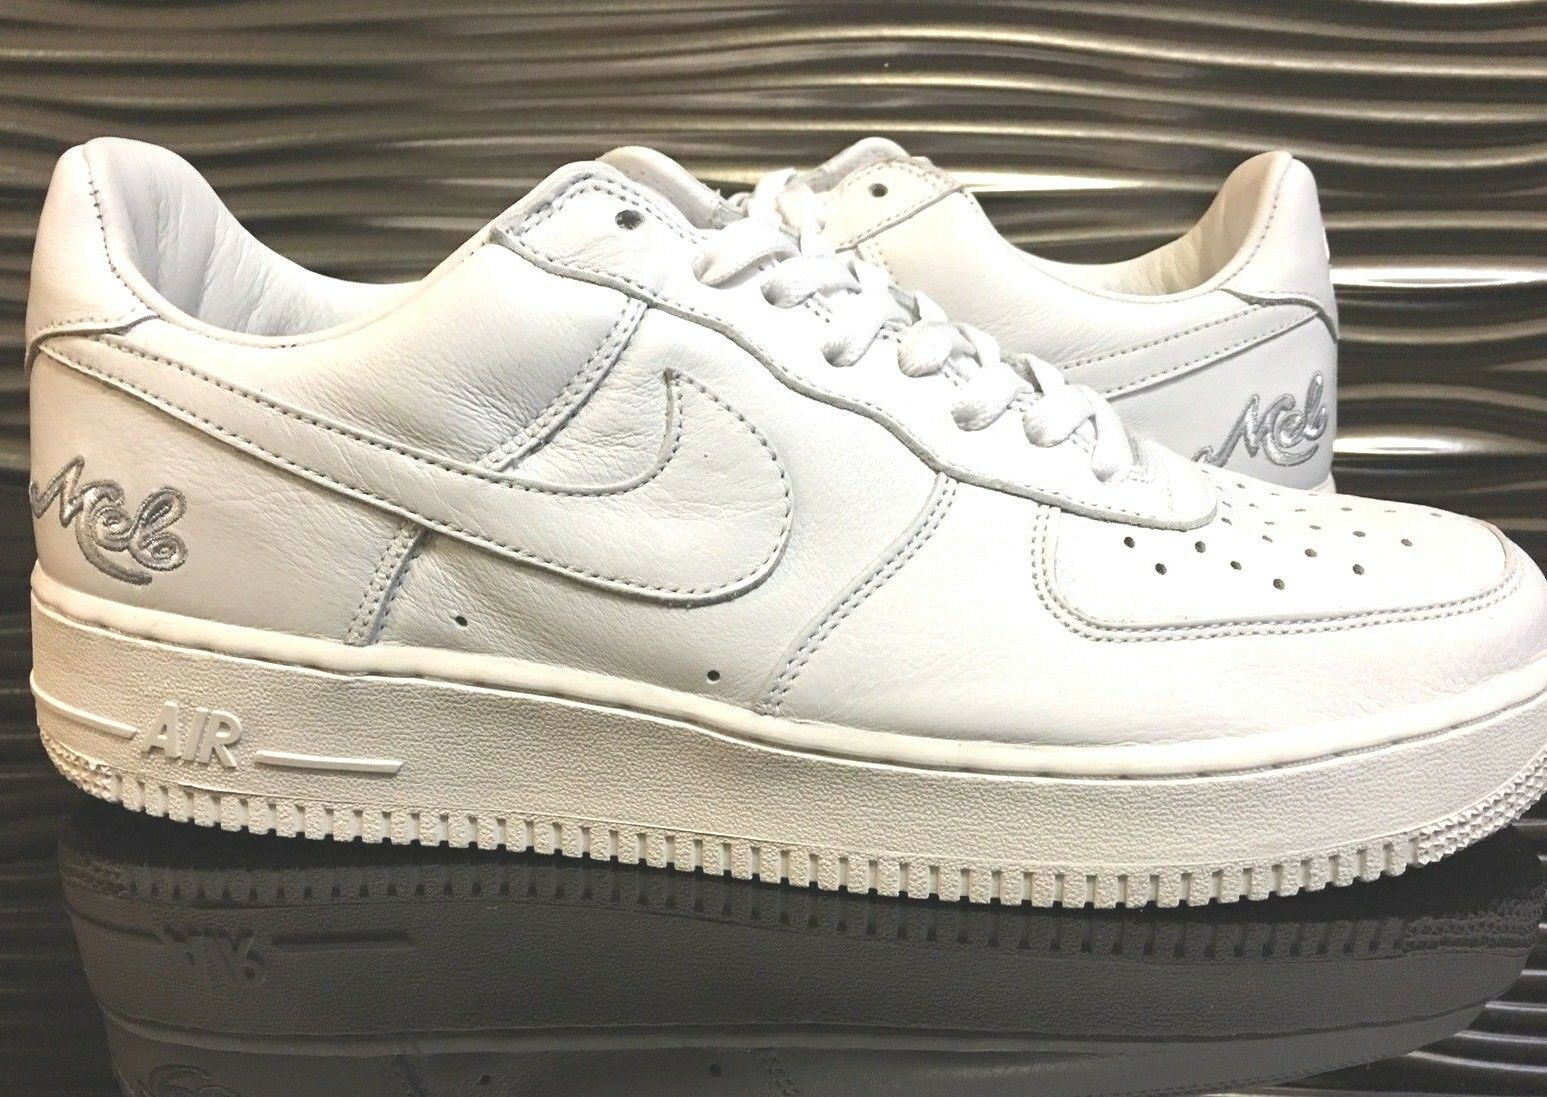 Nike Air Force 1 Low Melo White Sample DS Men's Size 11 Carmelo Anthony